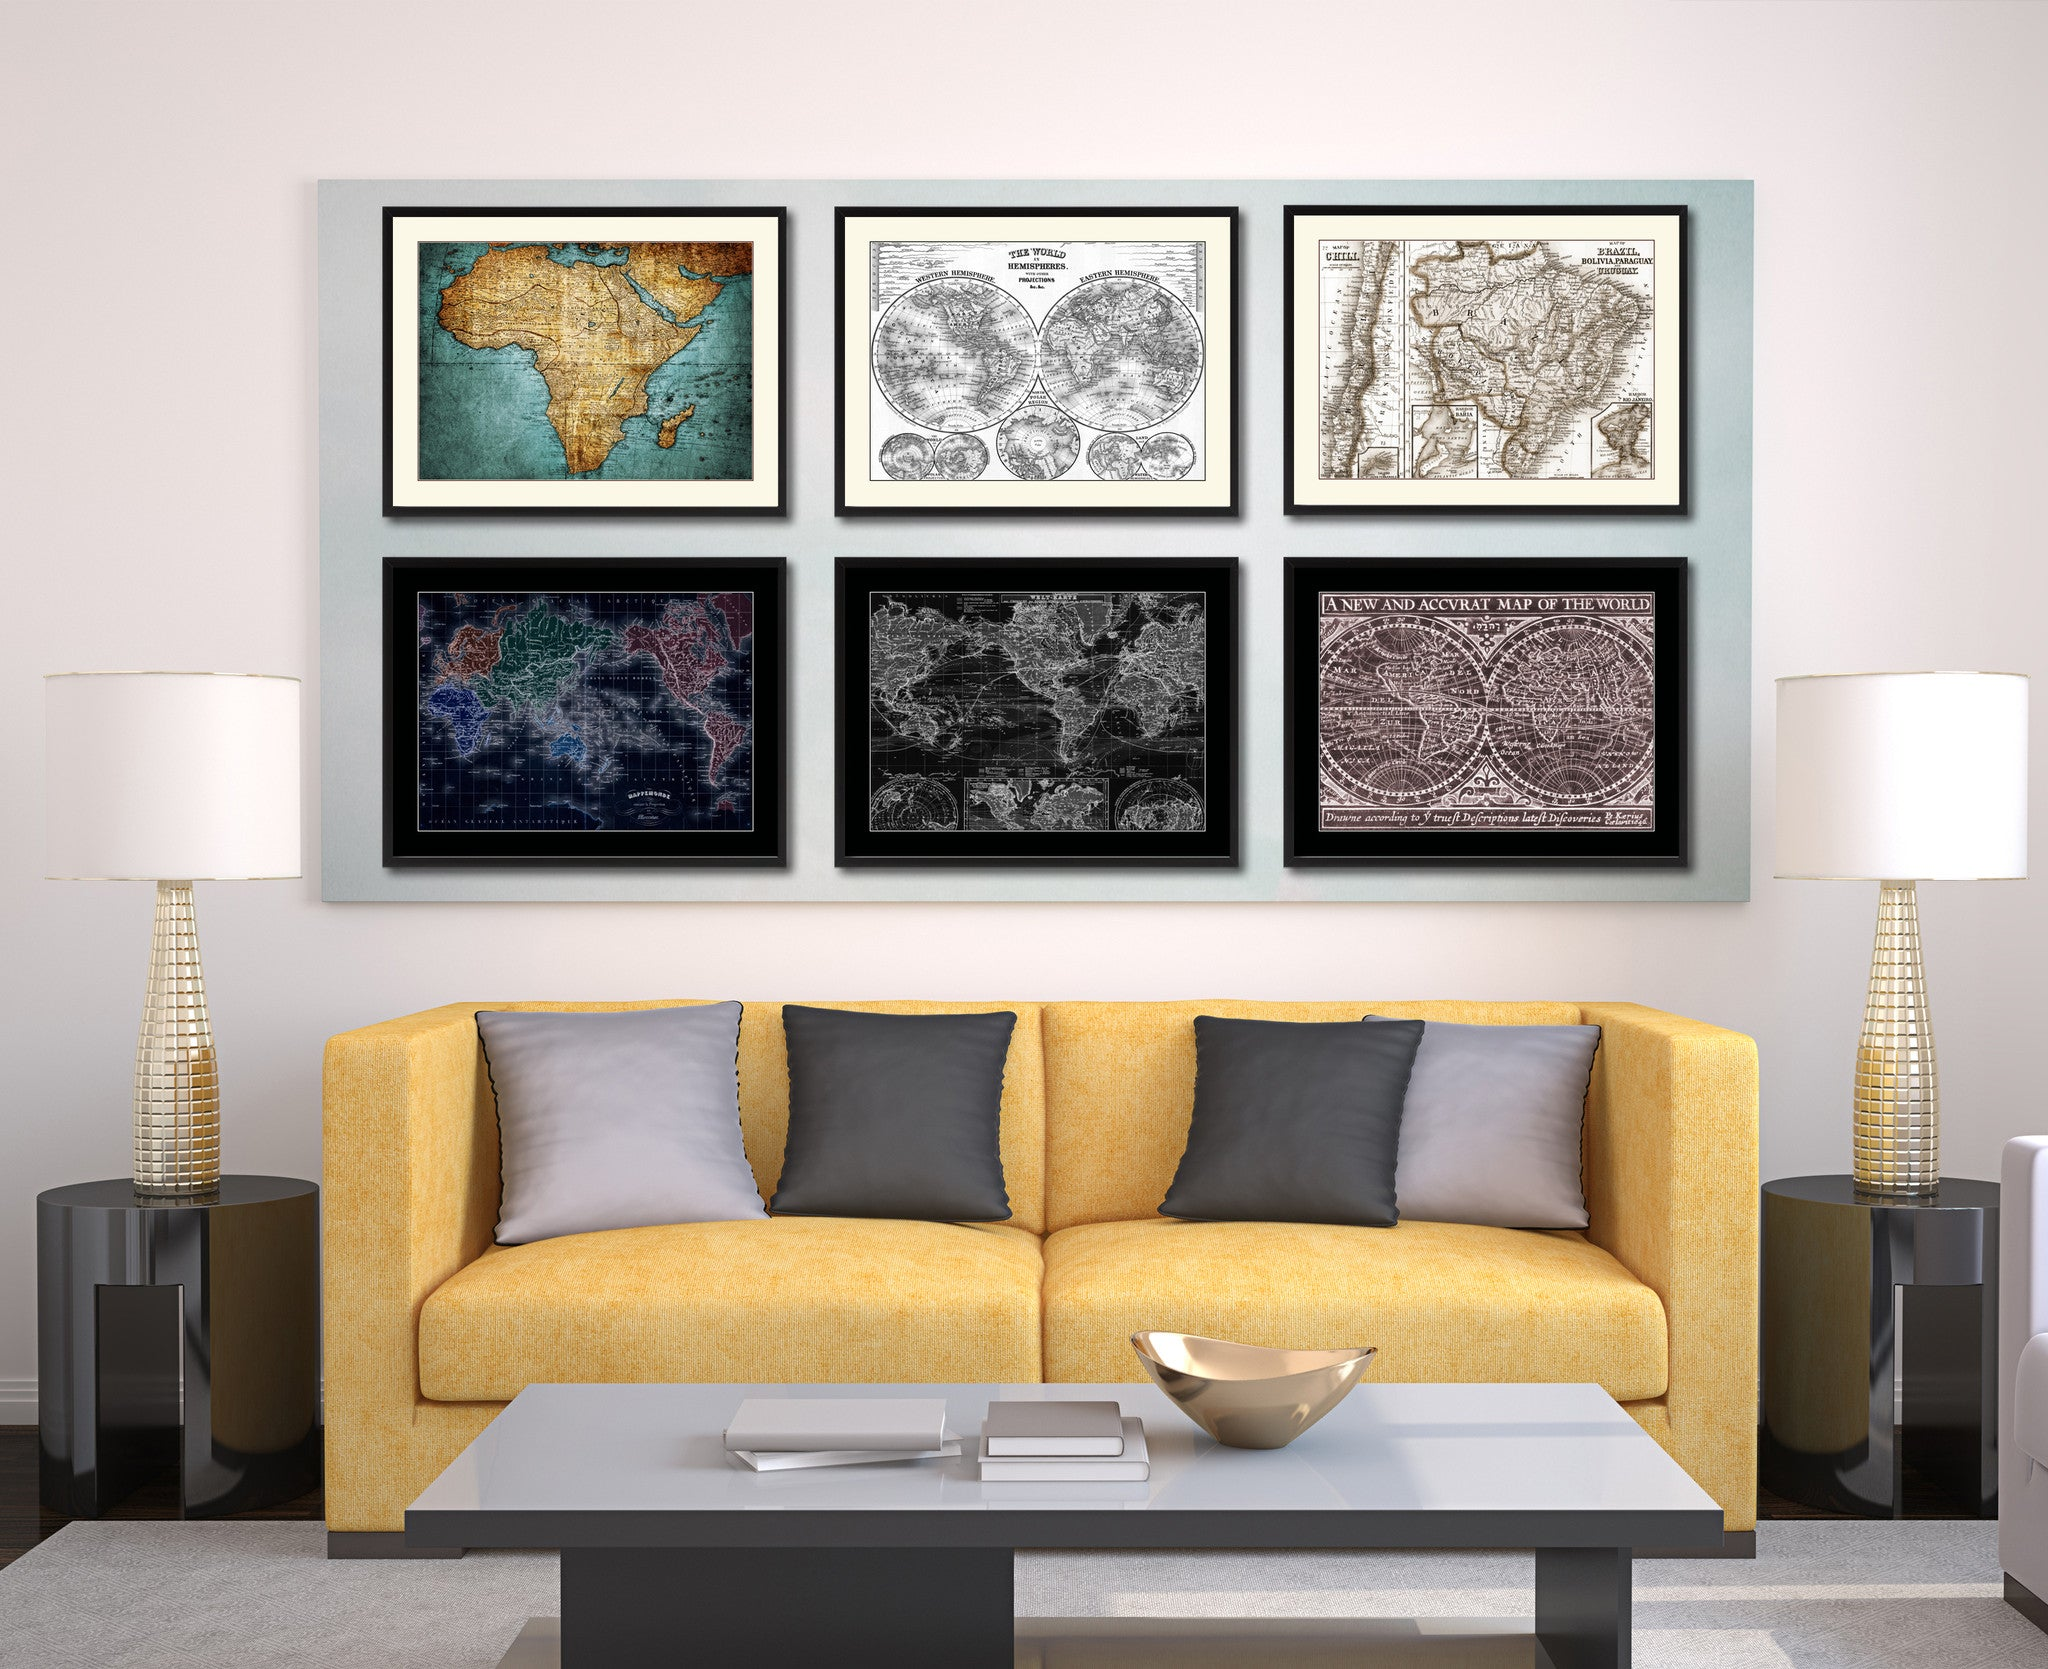 Afghanistan Persia Iraq Iran Vintage Sepia Map Canvas Print, Picture Frame  Gifts Home Decor Wall Art Decoration